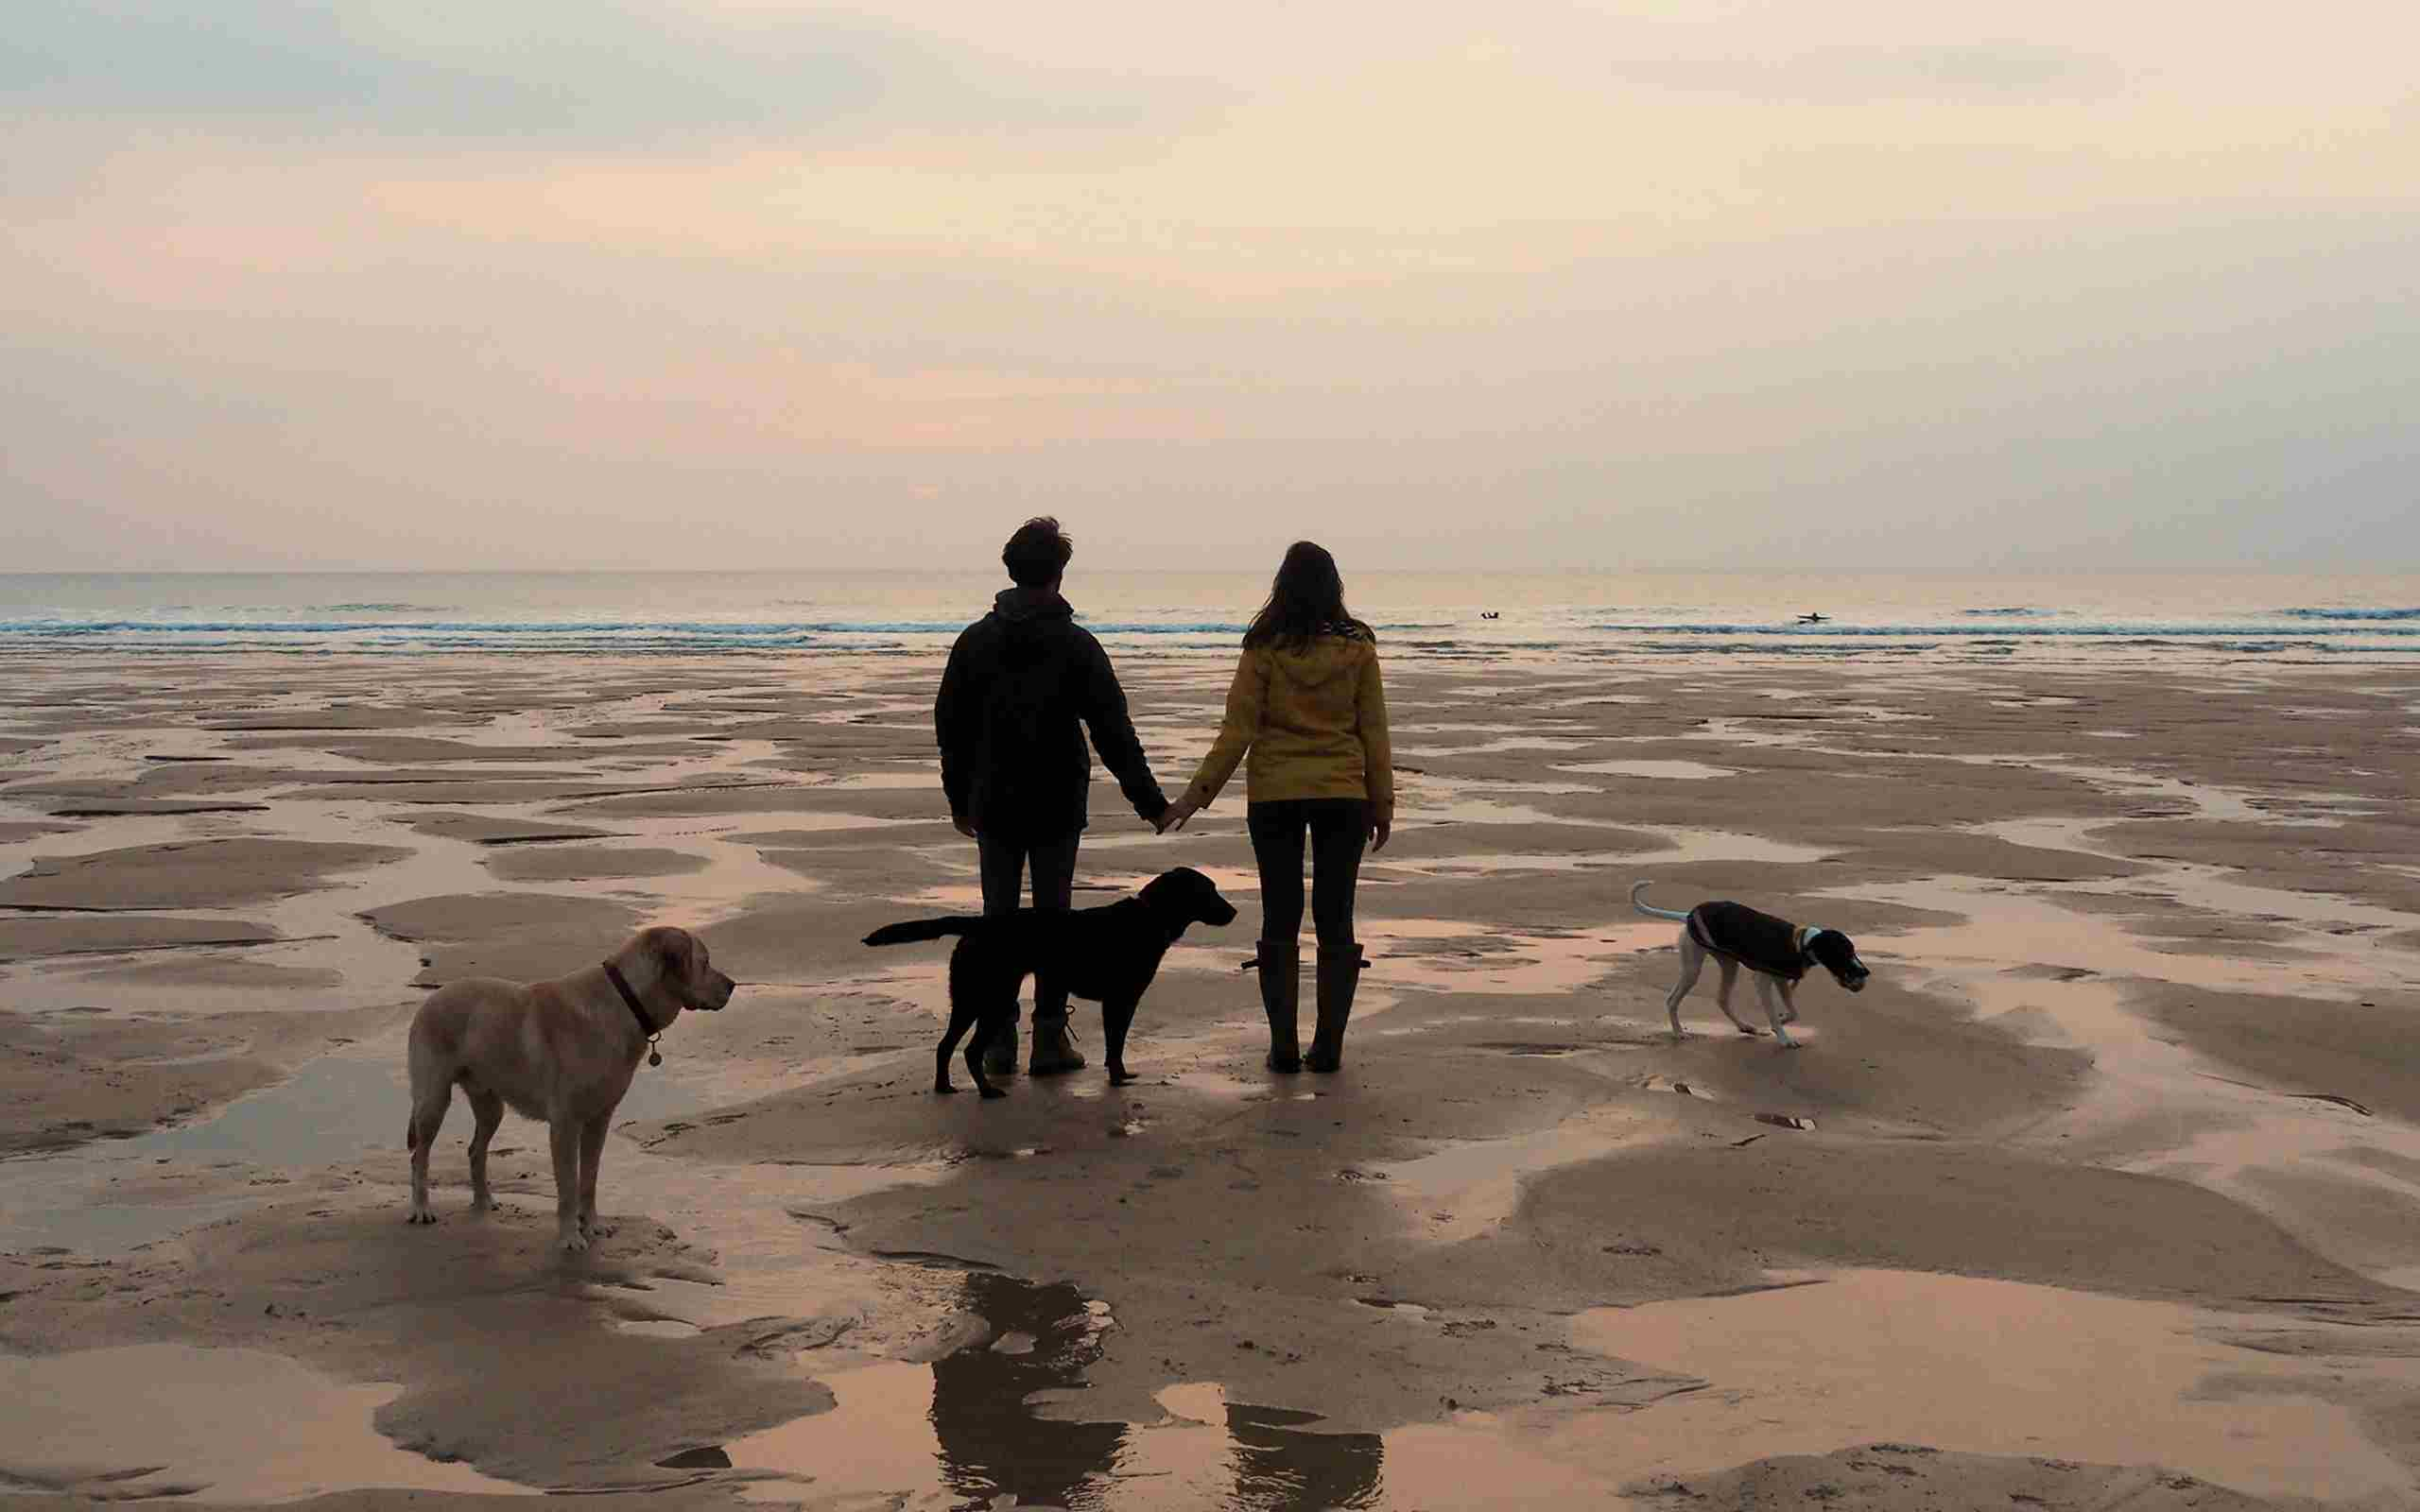 Couple-walking-dogs-on-the-beach.jpg (1)